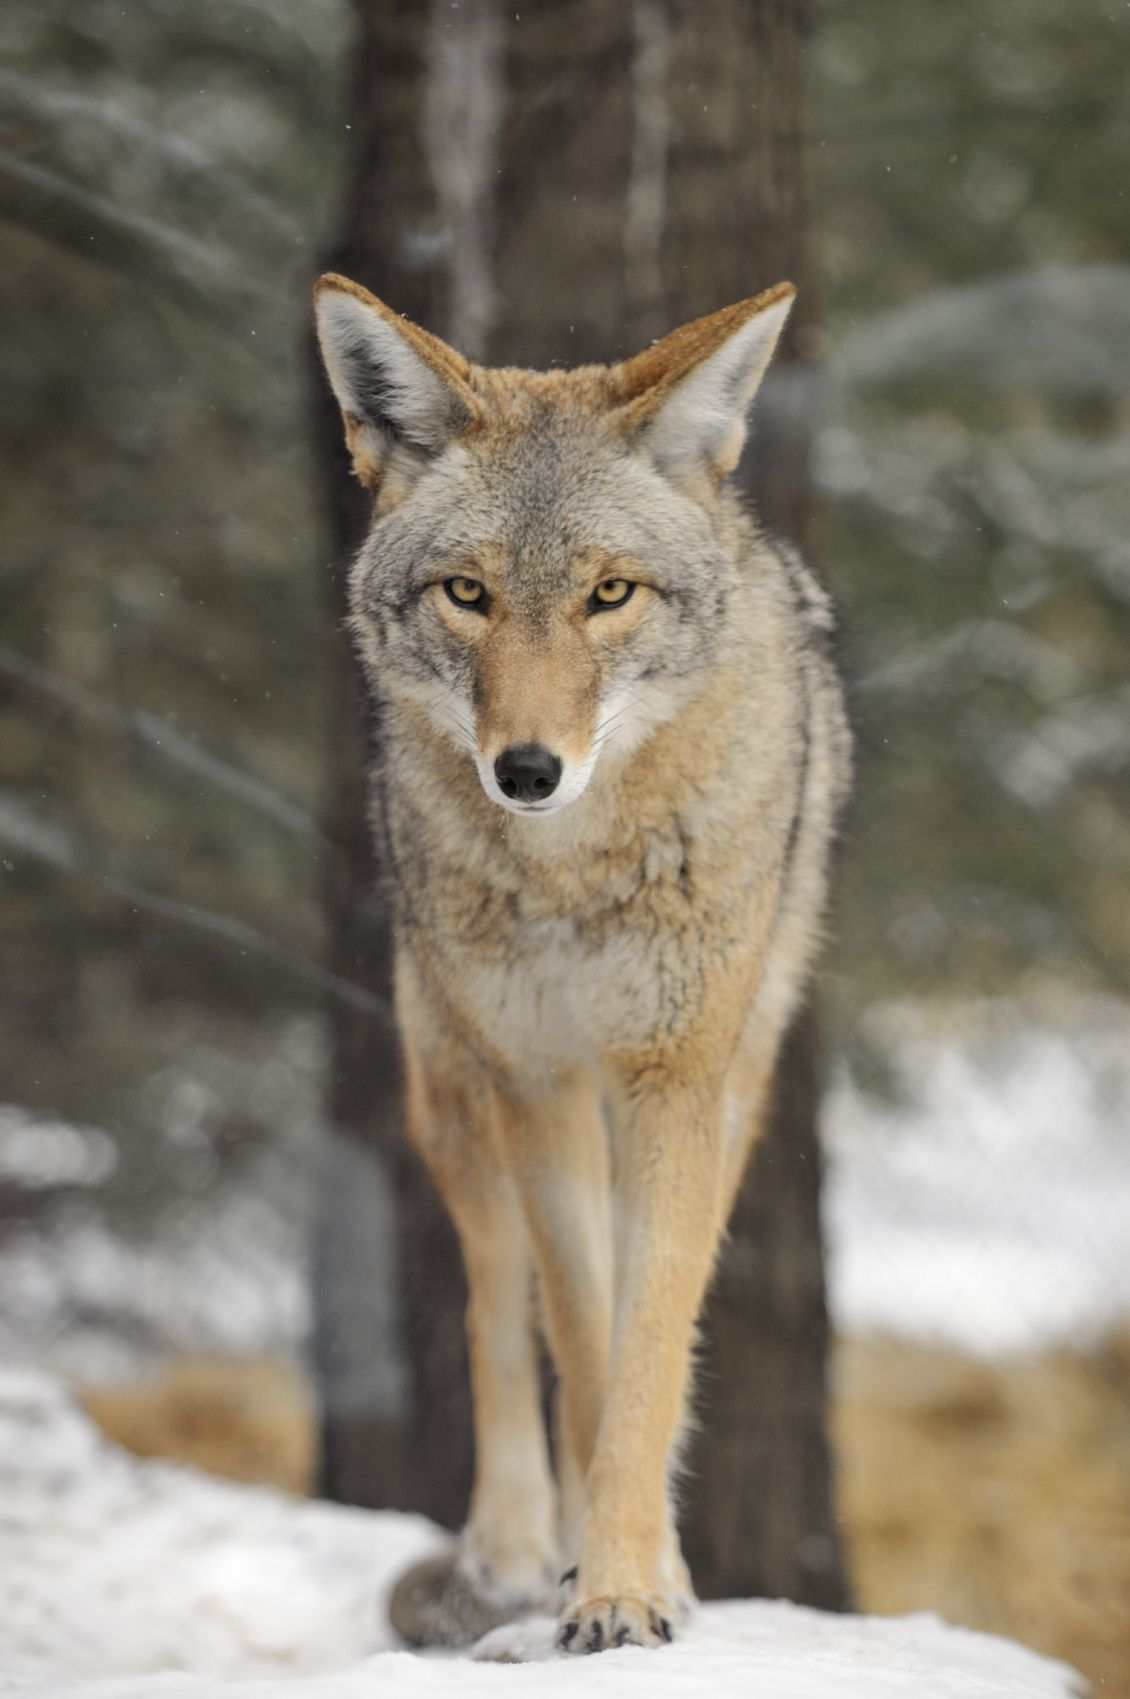 Coyote Awareness The Coyote is a common resident of the